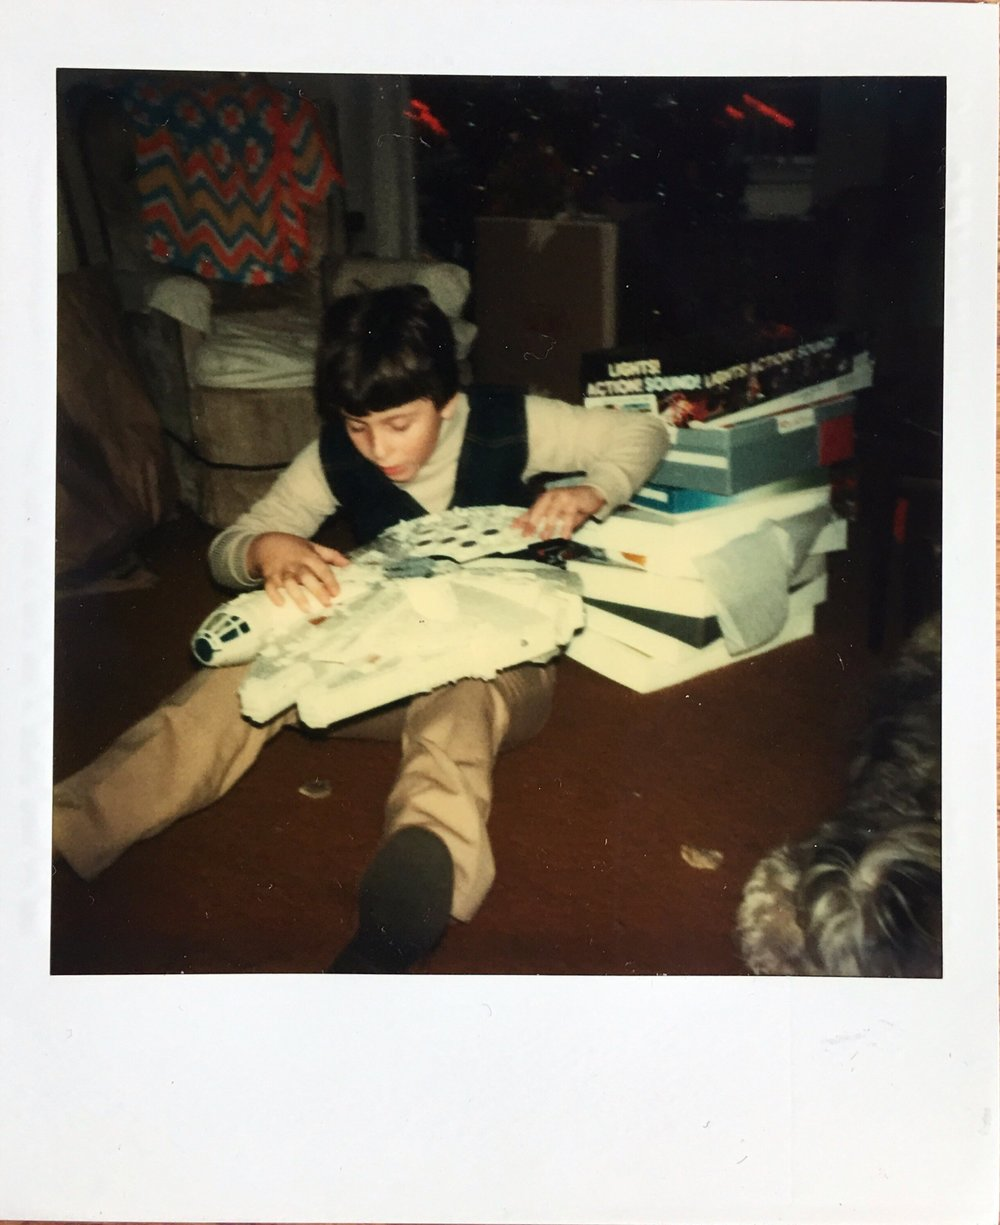 Another favorite of mine, a grandson opening his Christmas present. We've been in touch and I hope to reunite these Polaroids with him and other family members.